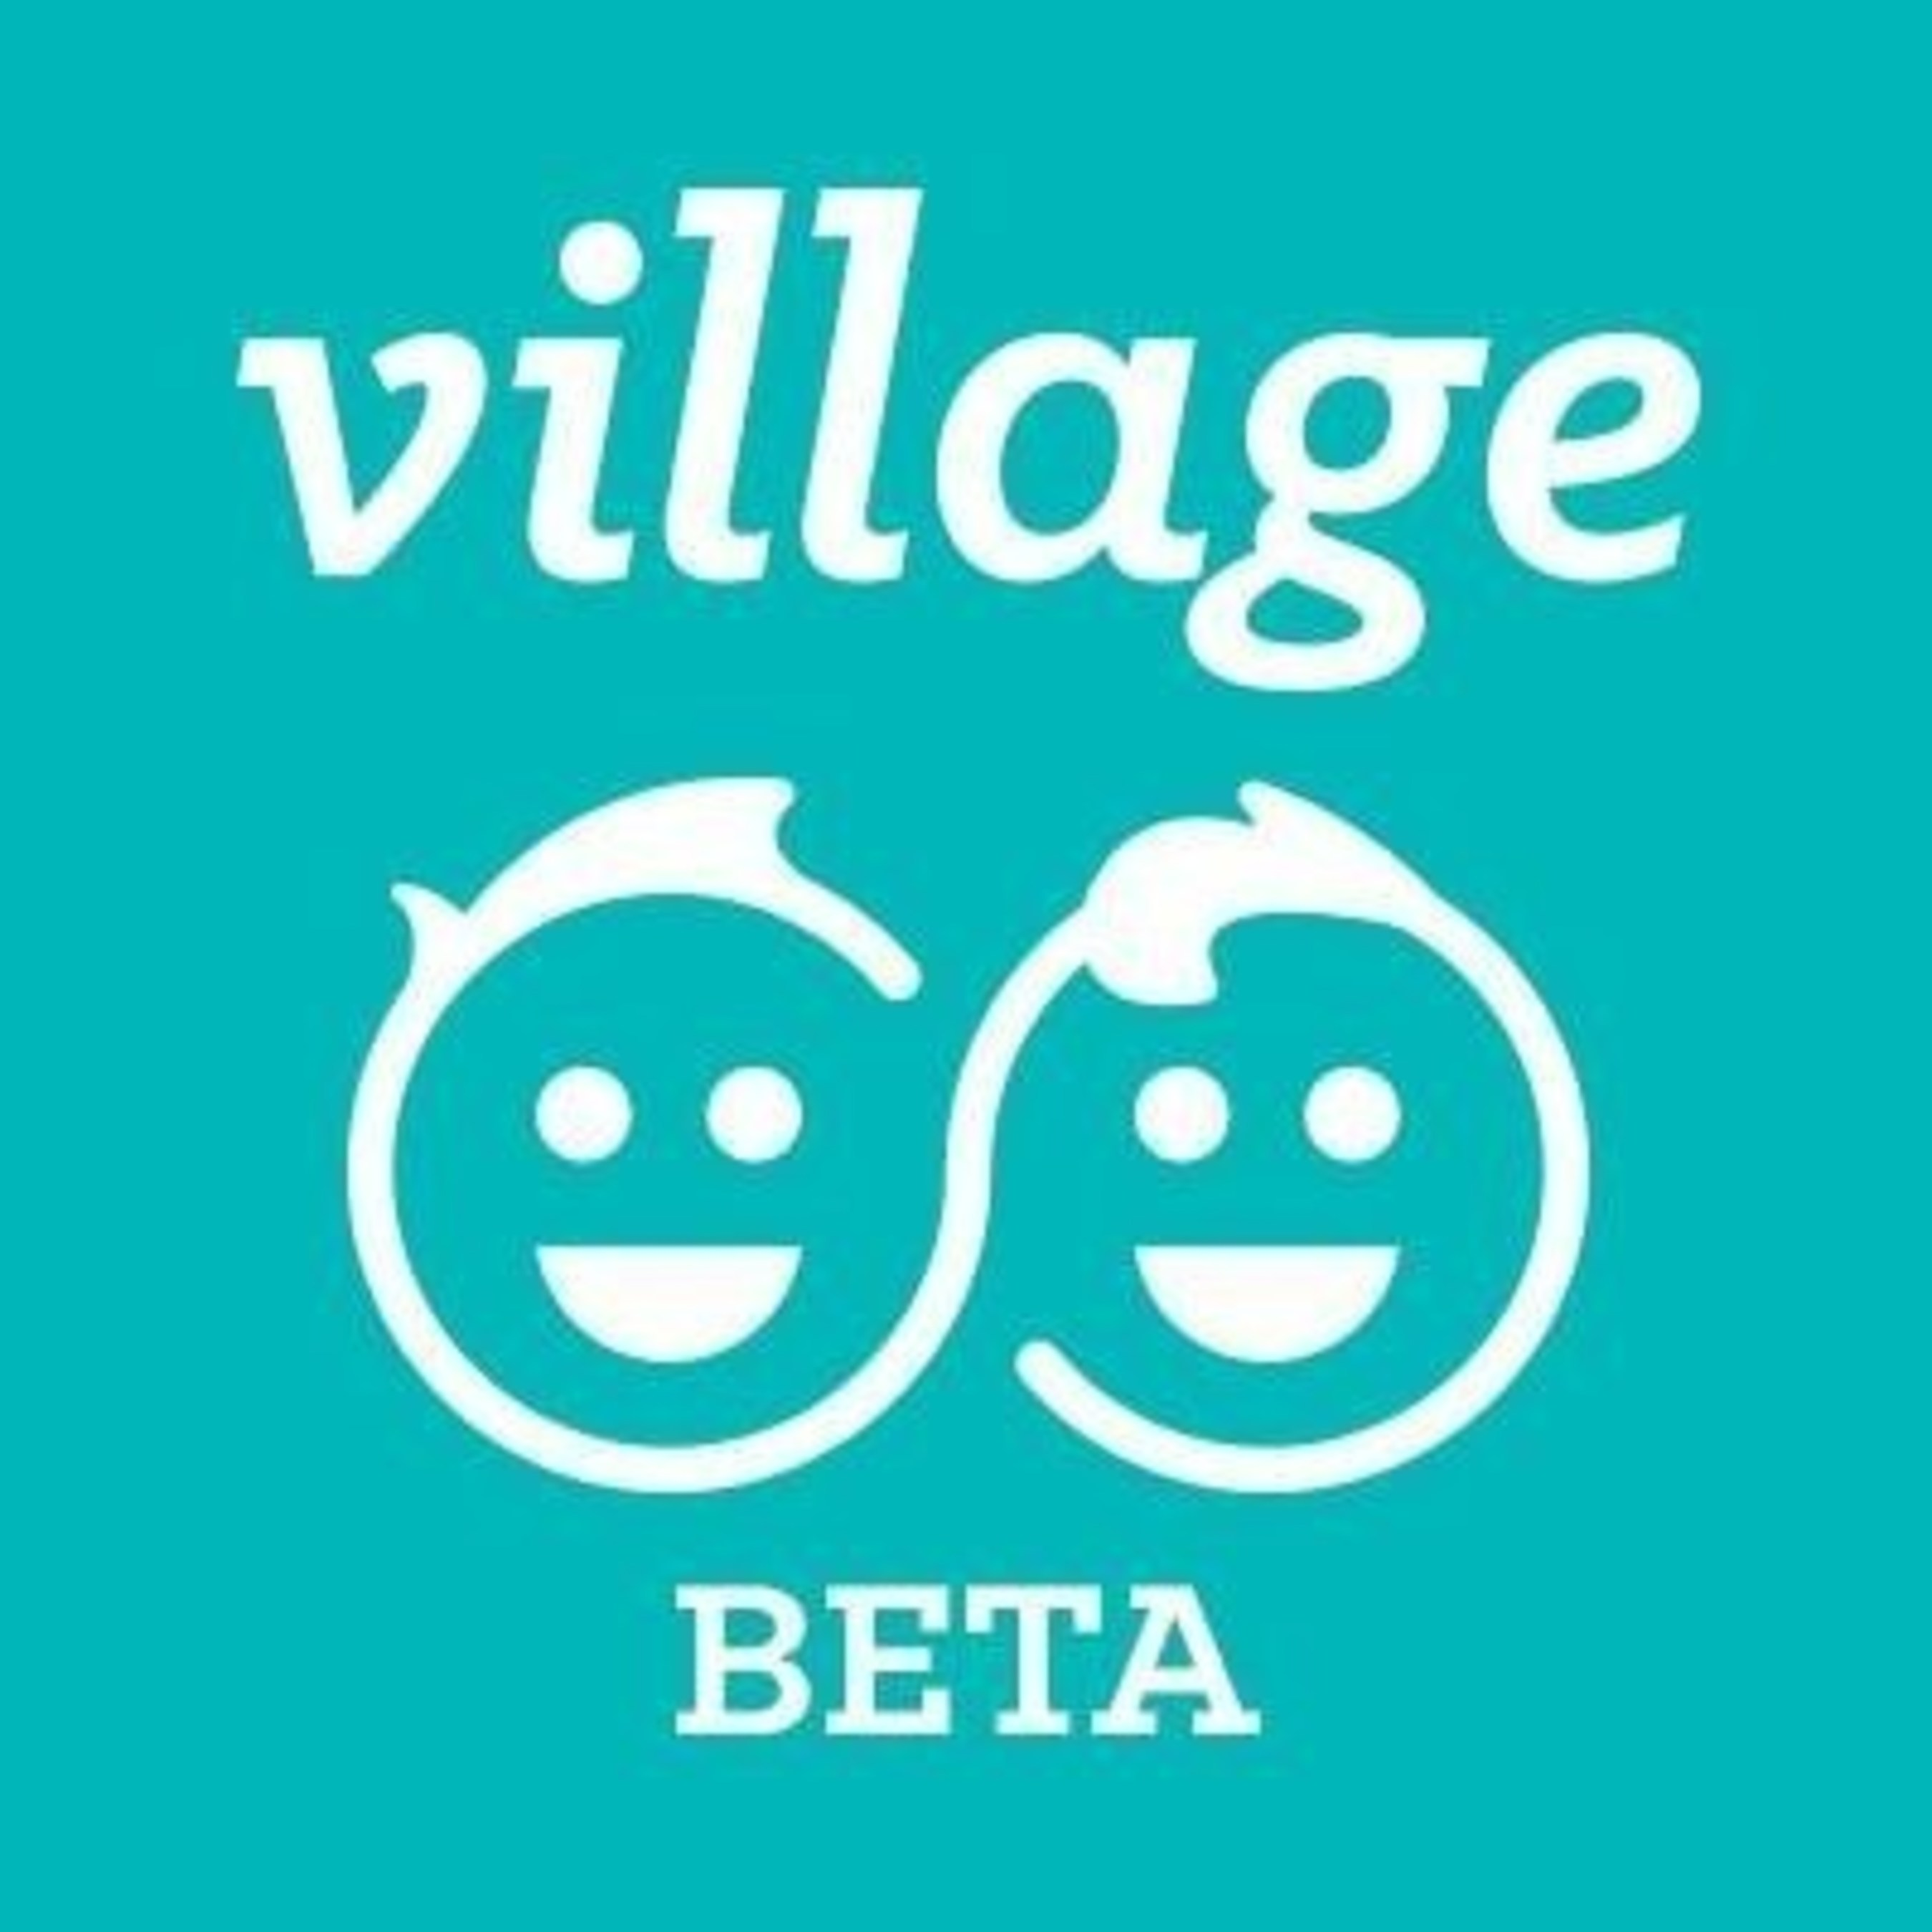 Village - A New App for Mobile Devices - Seeks Early Adopters Partnering With Social Service Organizations